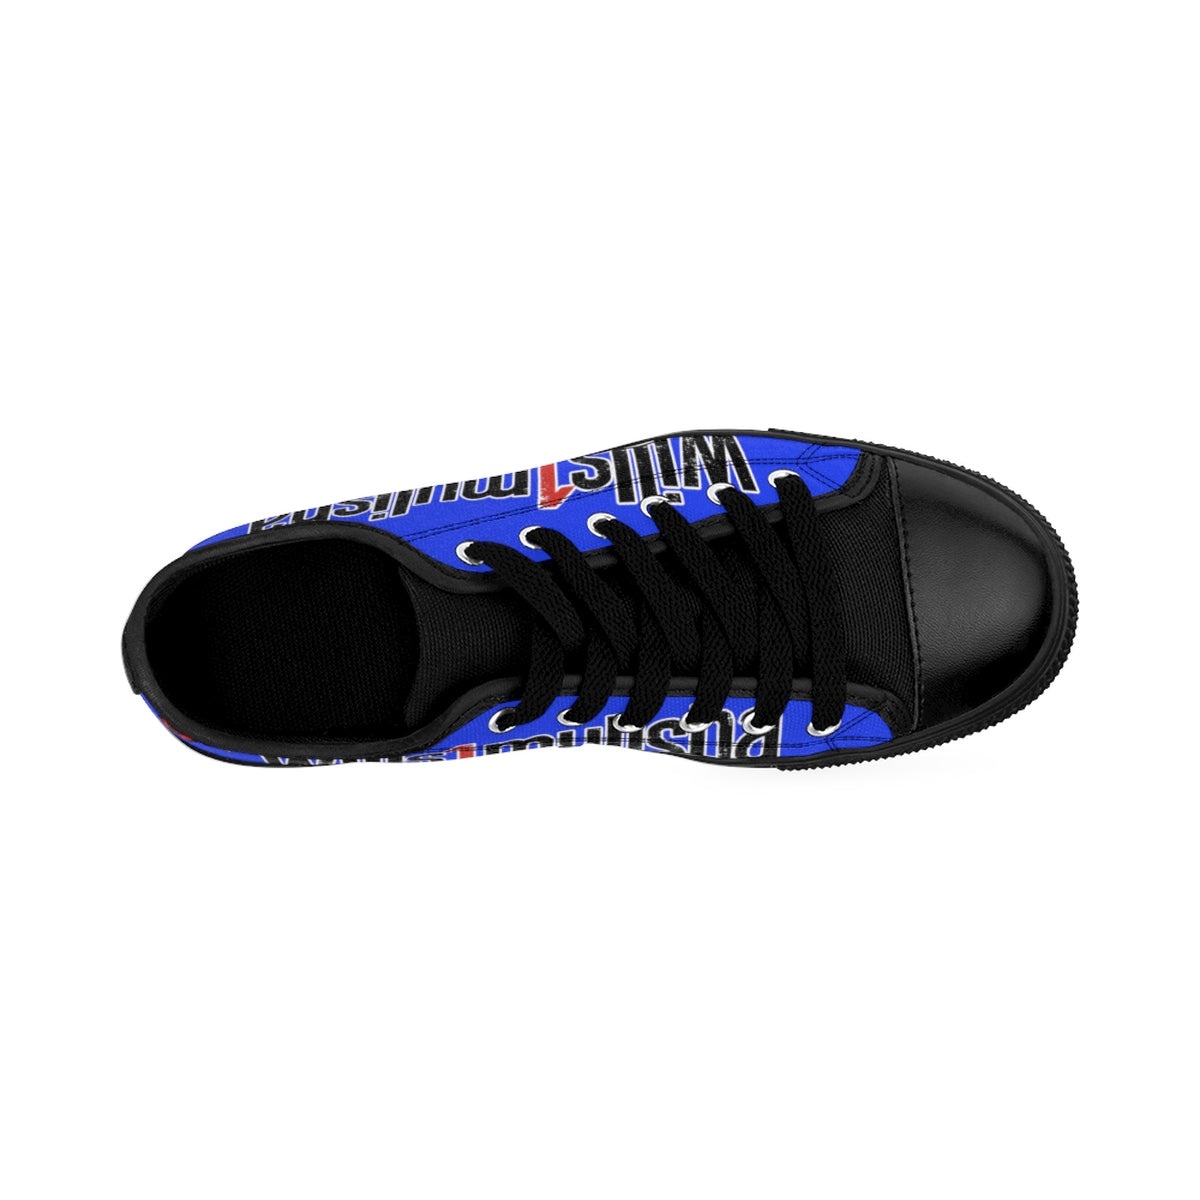 wills1mulisha Low Top Skater Men's Canvas Sneakers Blue